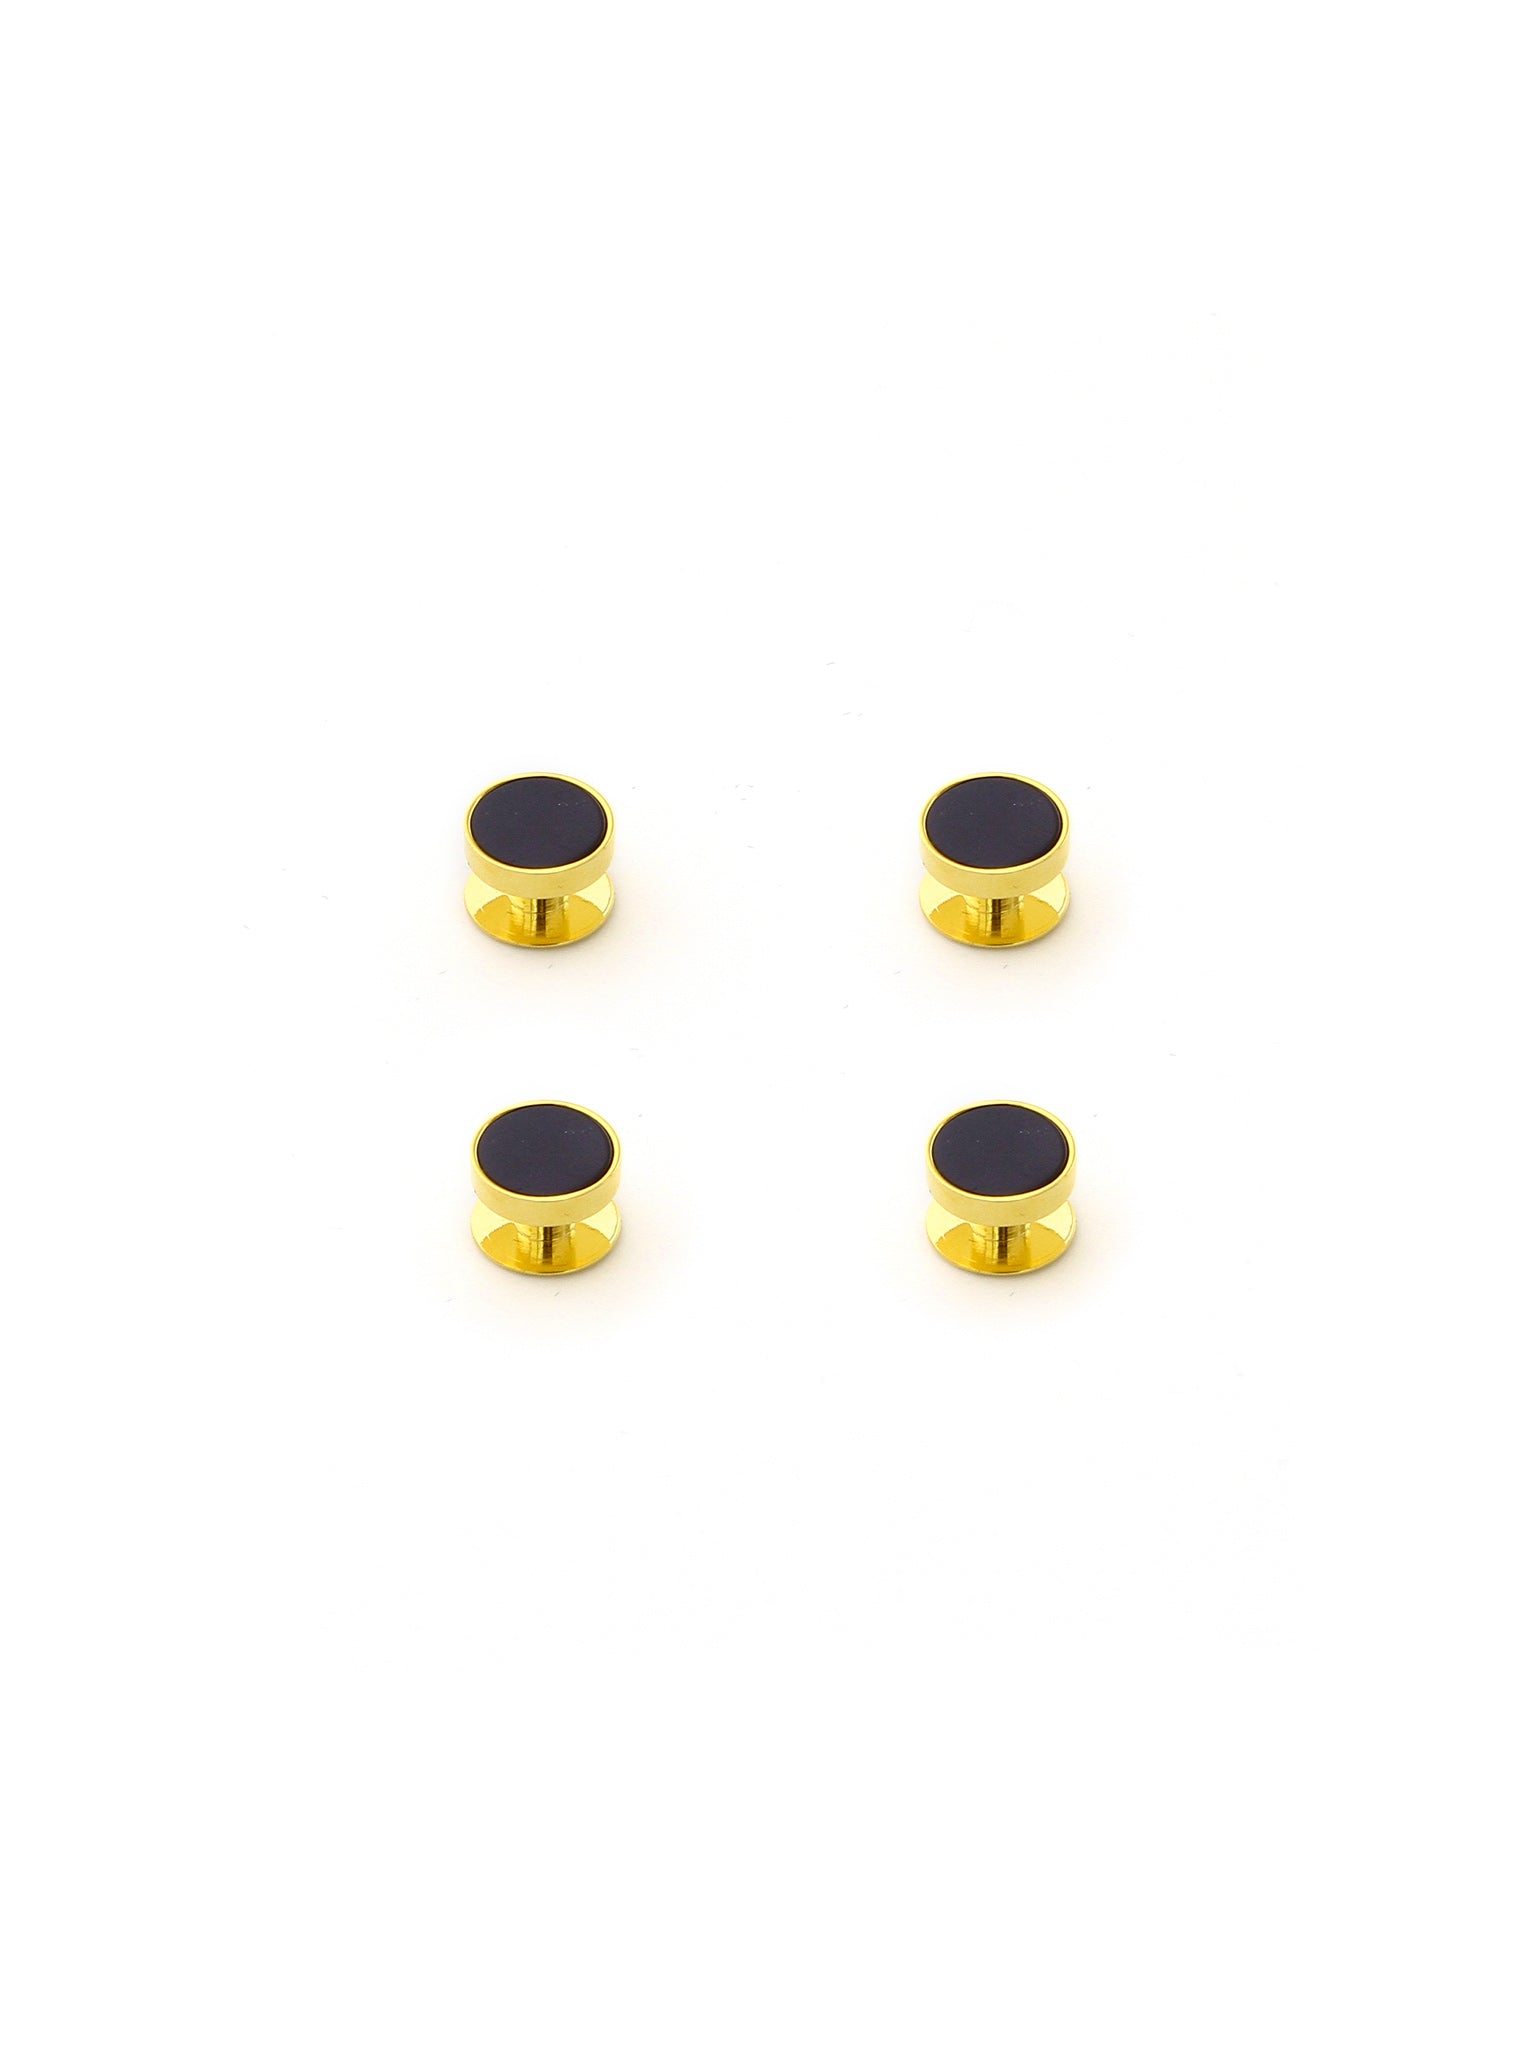 Black/Gold 4pc Stud Set